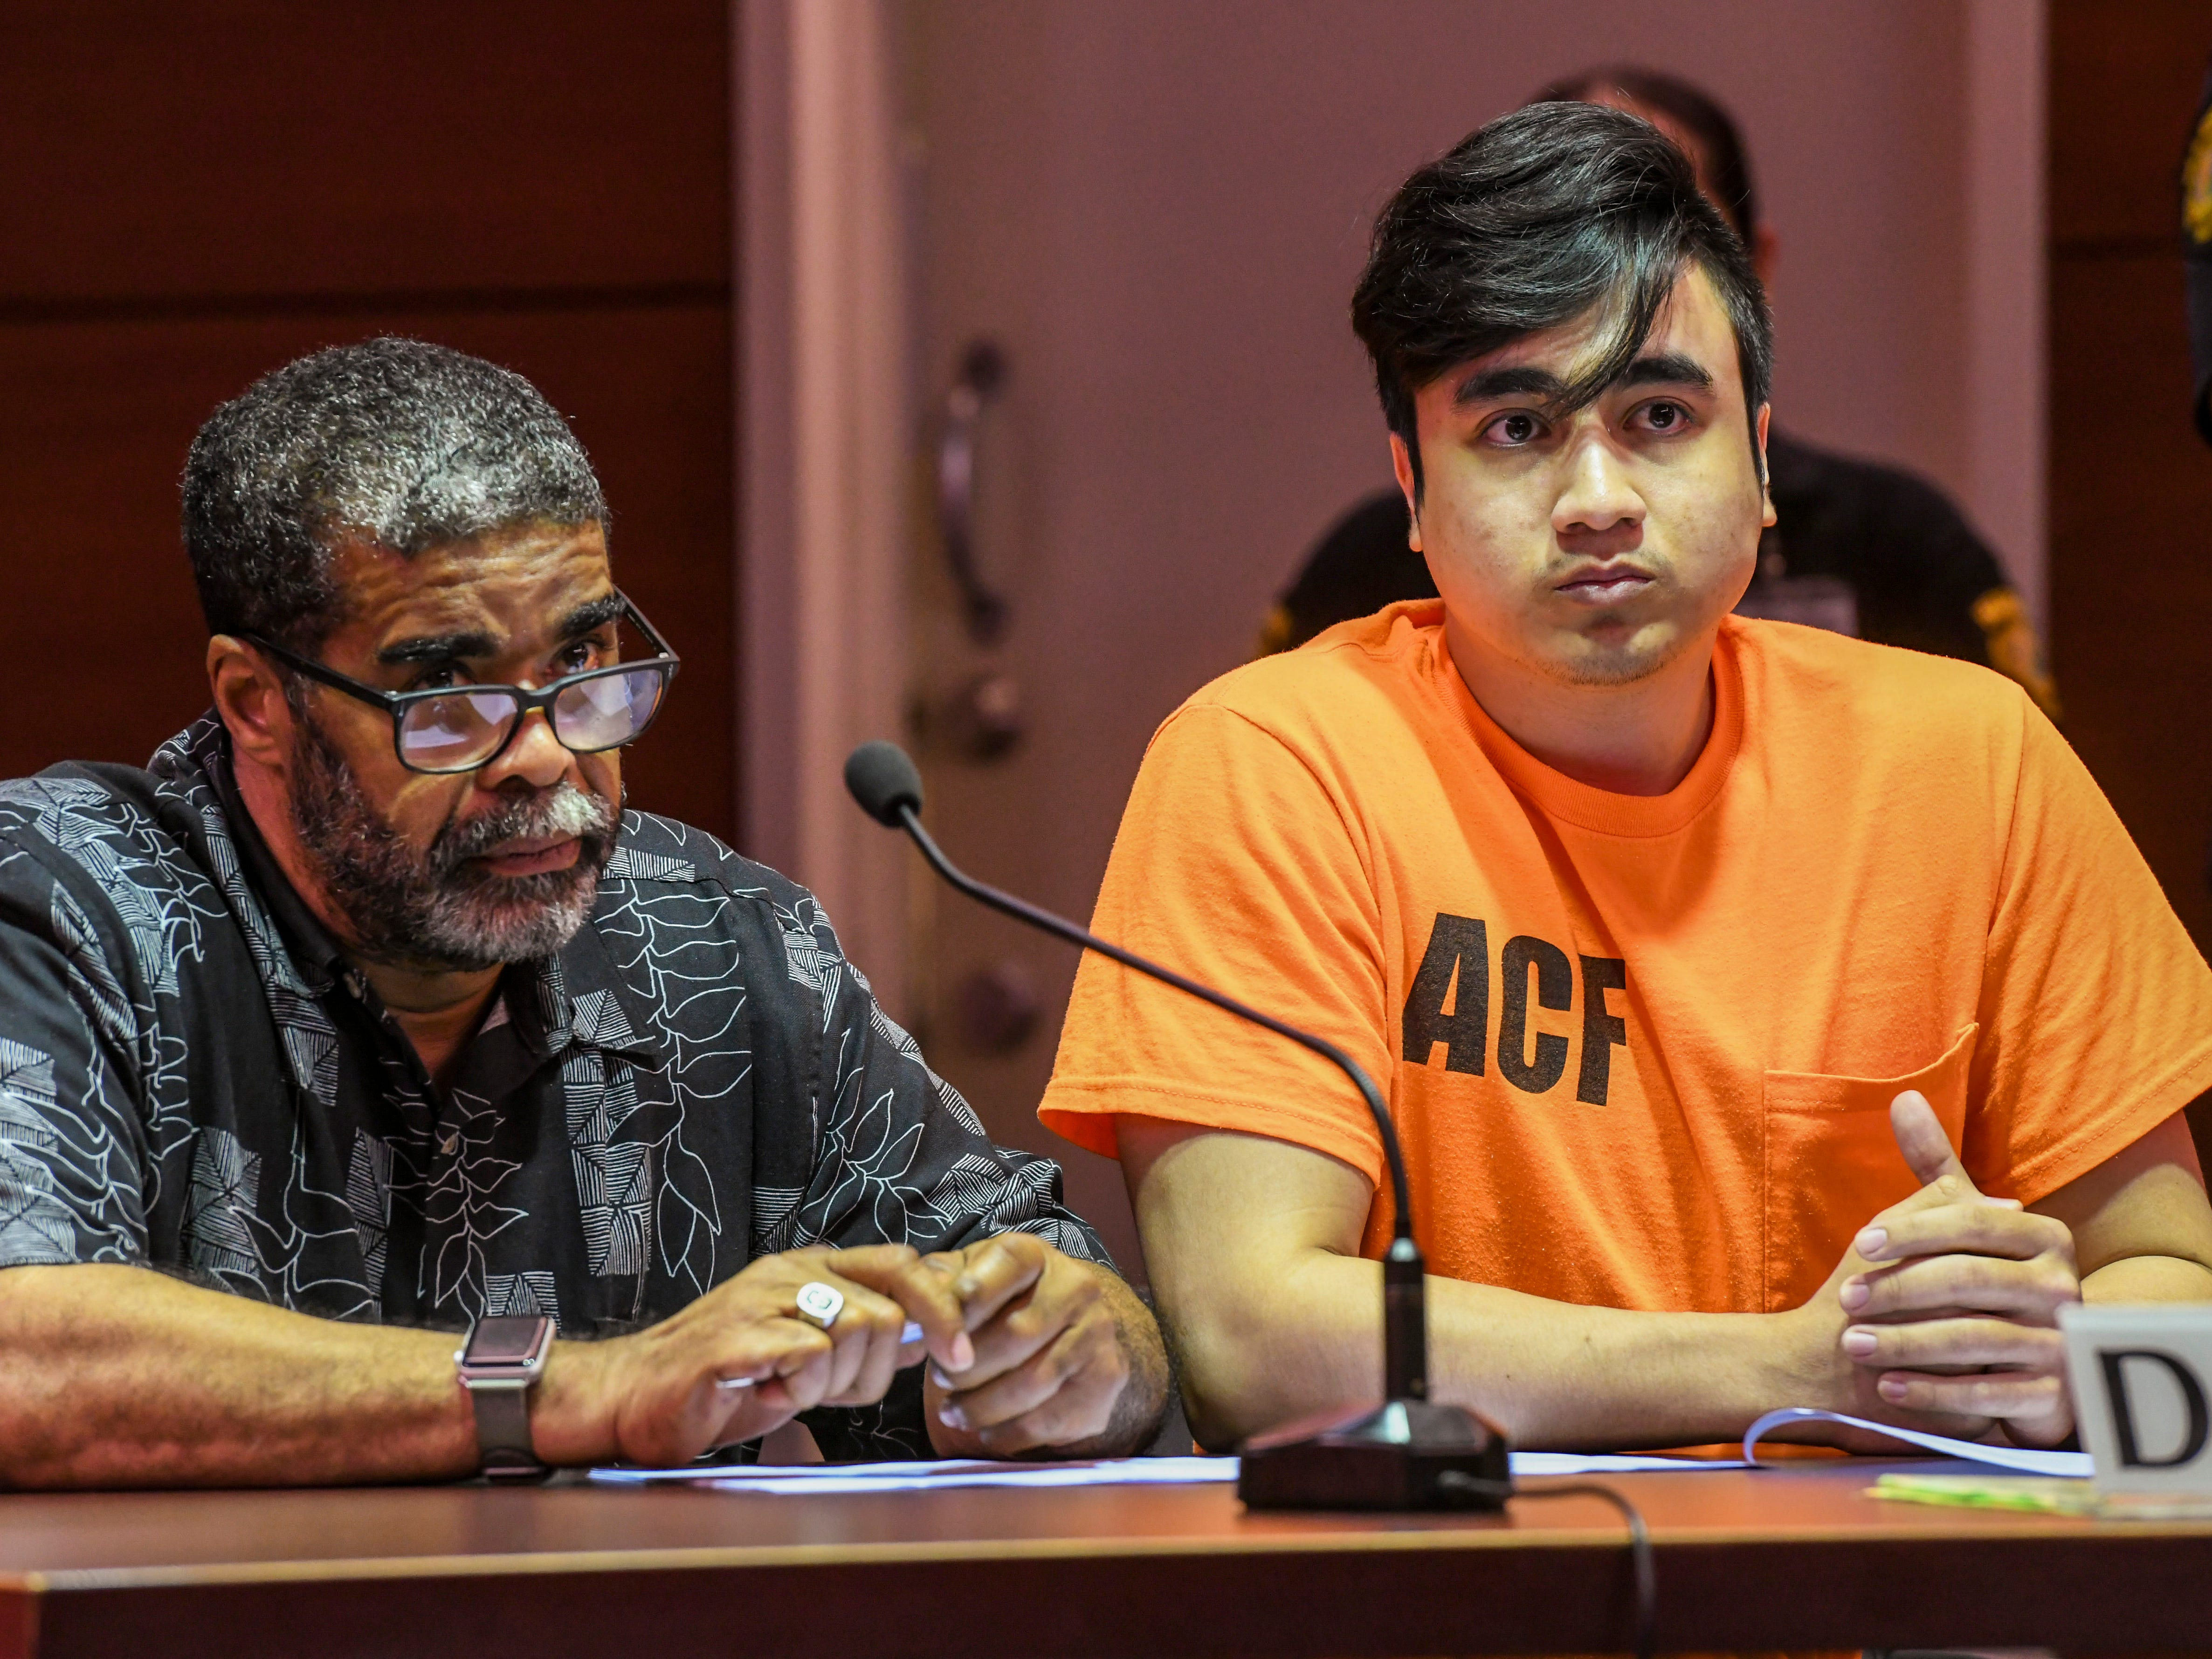 Defendant Joseph Sagdal, right, is seated with his attorney, Clyde Lemons Jr., as they listen to remarks made by the prosecution during his appearance before Superior Court of Guam Judge Maria Cenzon in Hagåtña on Thursday, Dec. 6, 2018. Sagdal faced charges in the December 2017 shooting deaths of Brokey Thamaso and AV Mwarecheong. During the hearing, Sagdal pleaded guilty to one count of manslaughter for the death of Mwarecheong and was sentenced to 15 years, with six years of his sentence suspended, by Judge Cenzon.